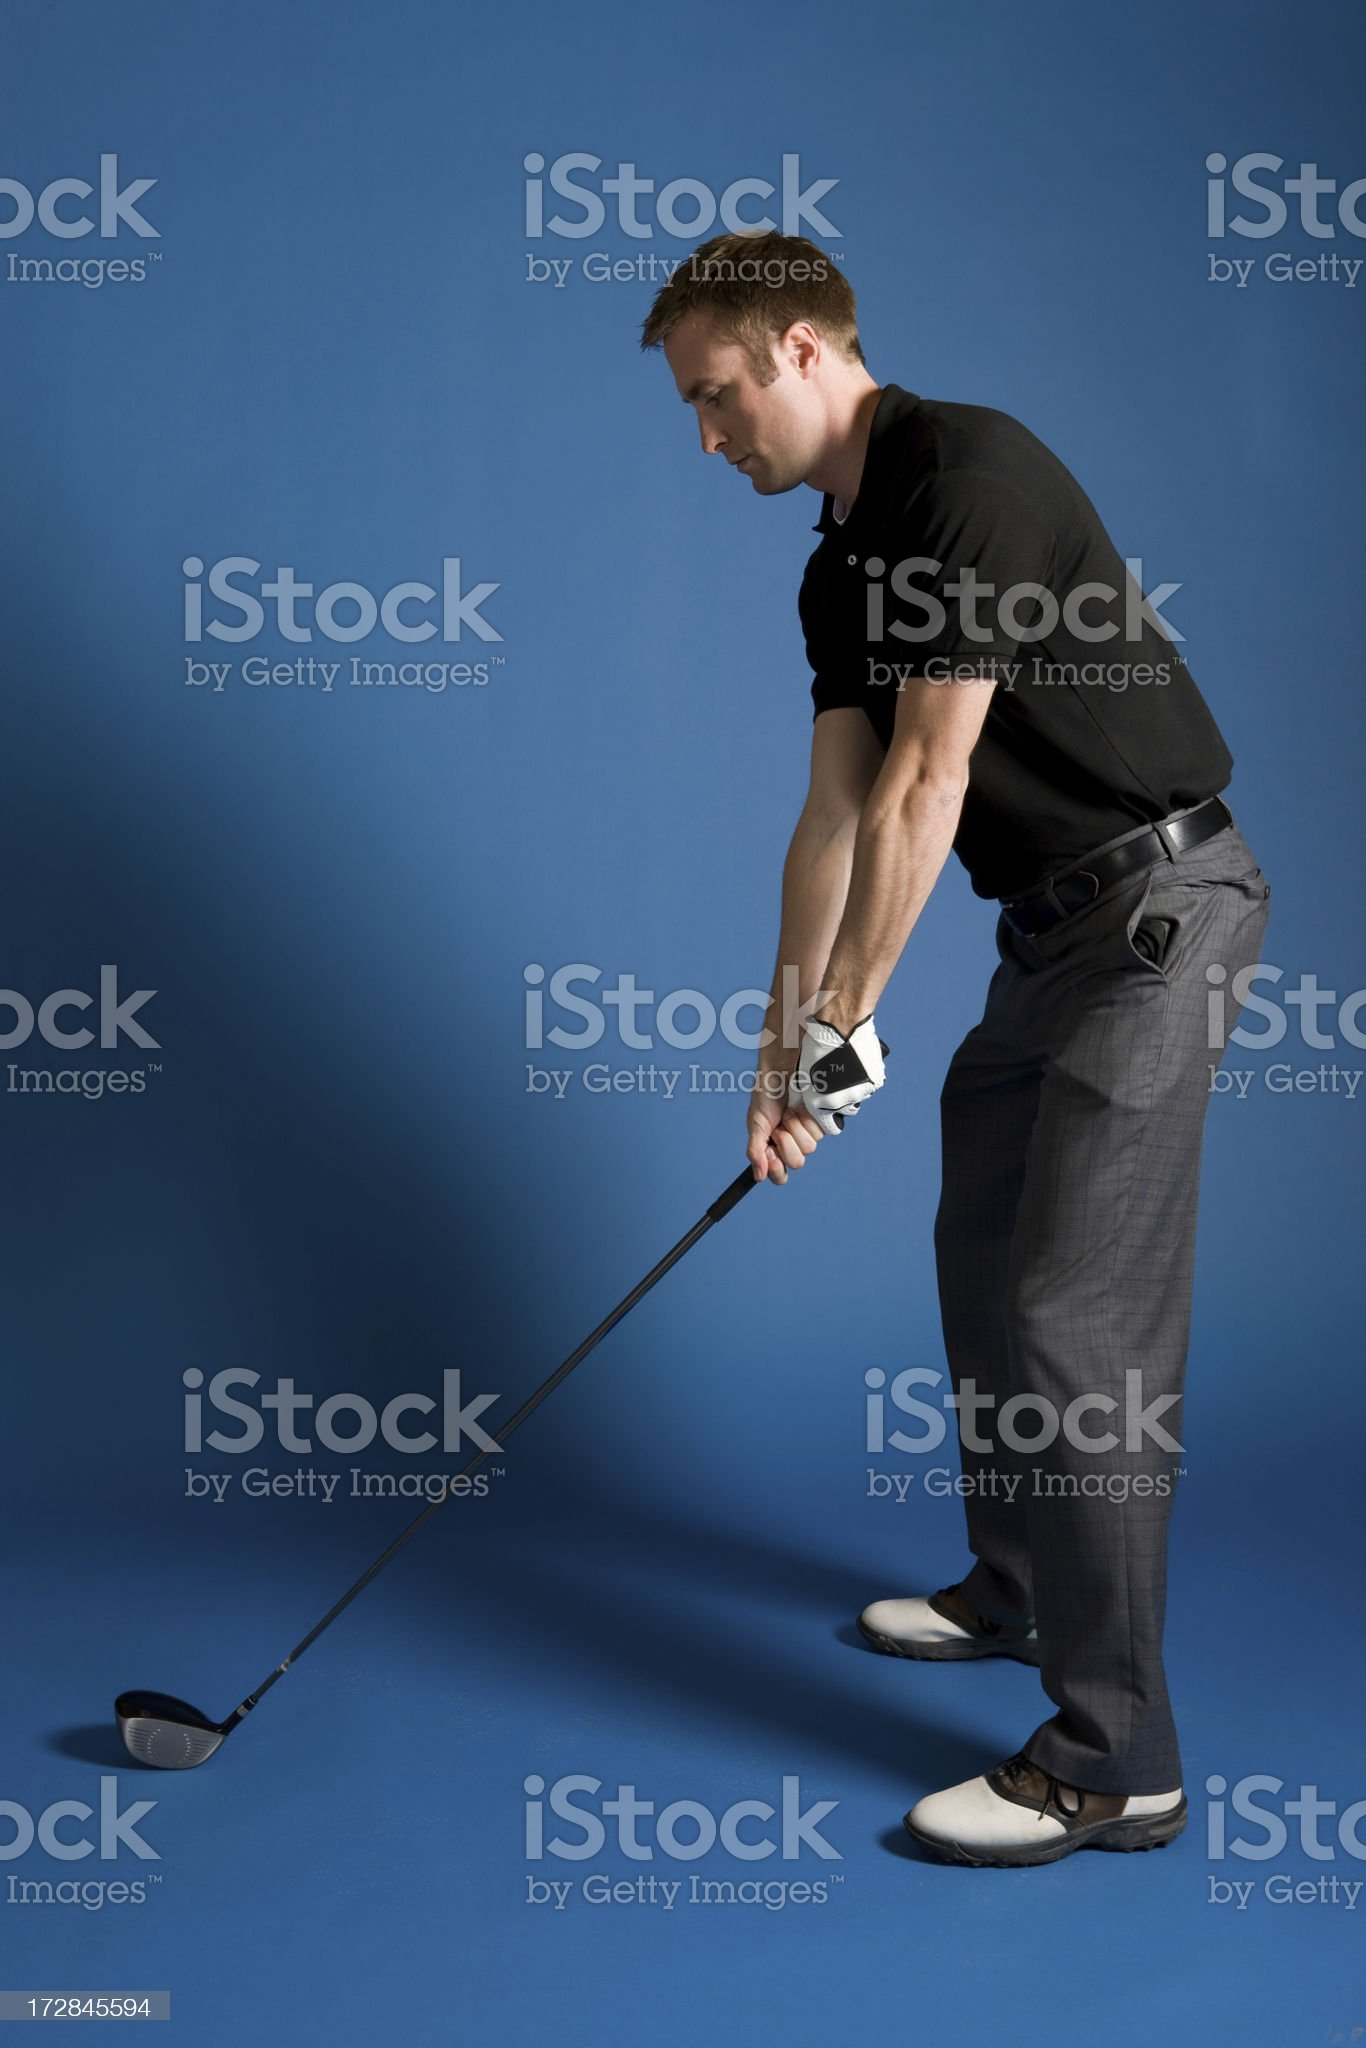 Golf Stance-Driver royalty-free stock photo